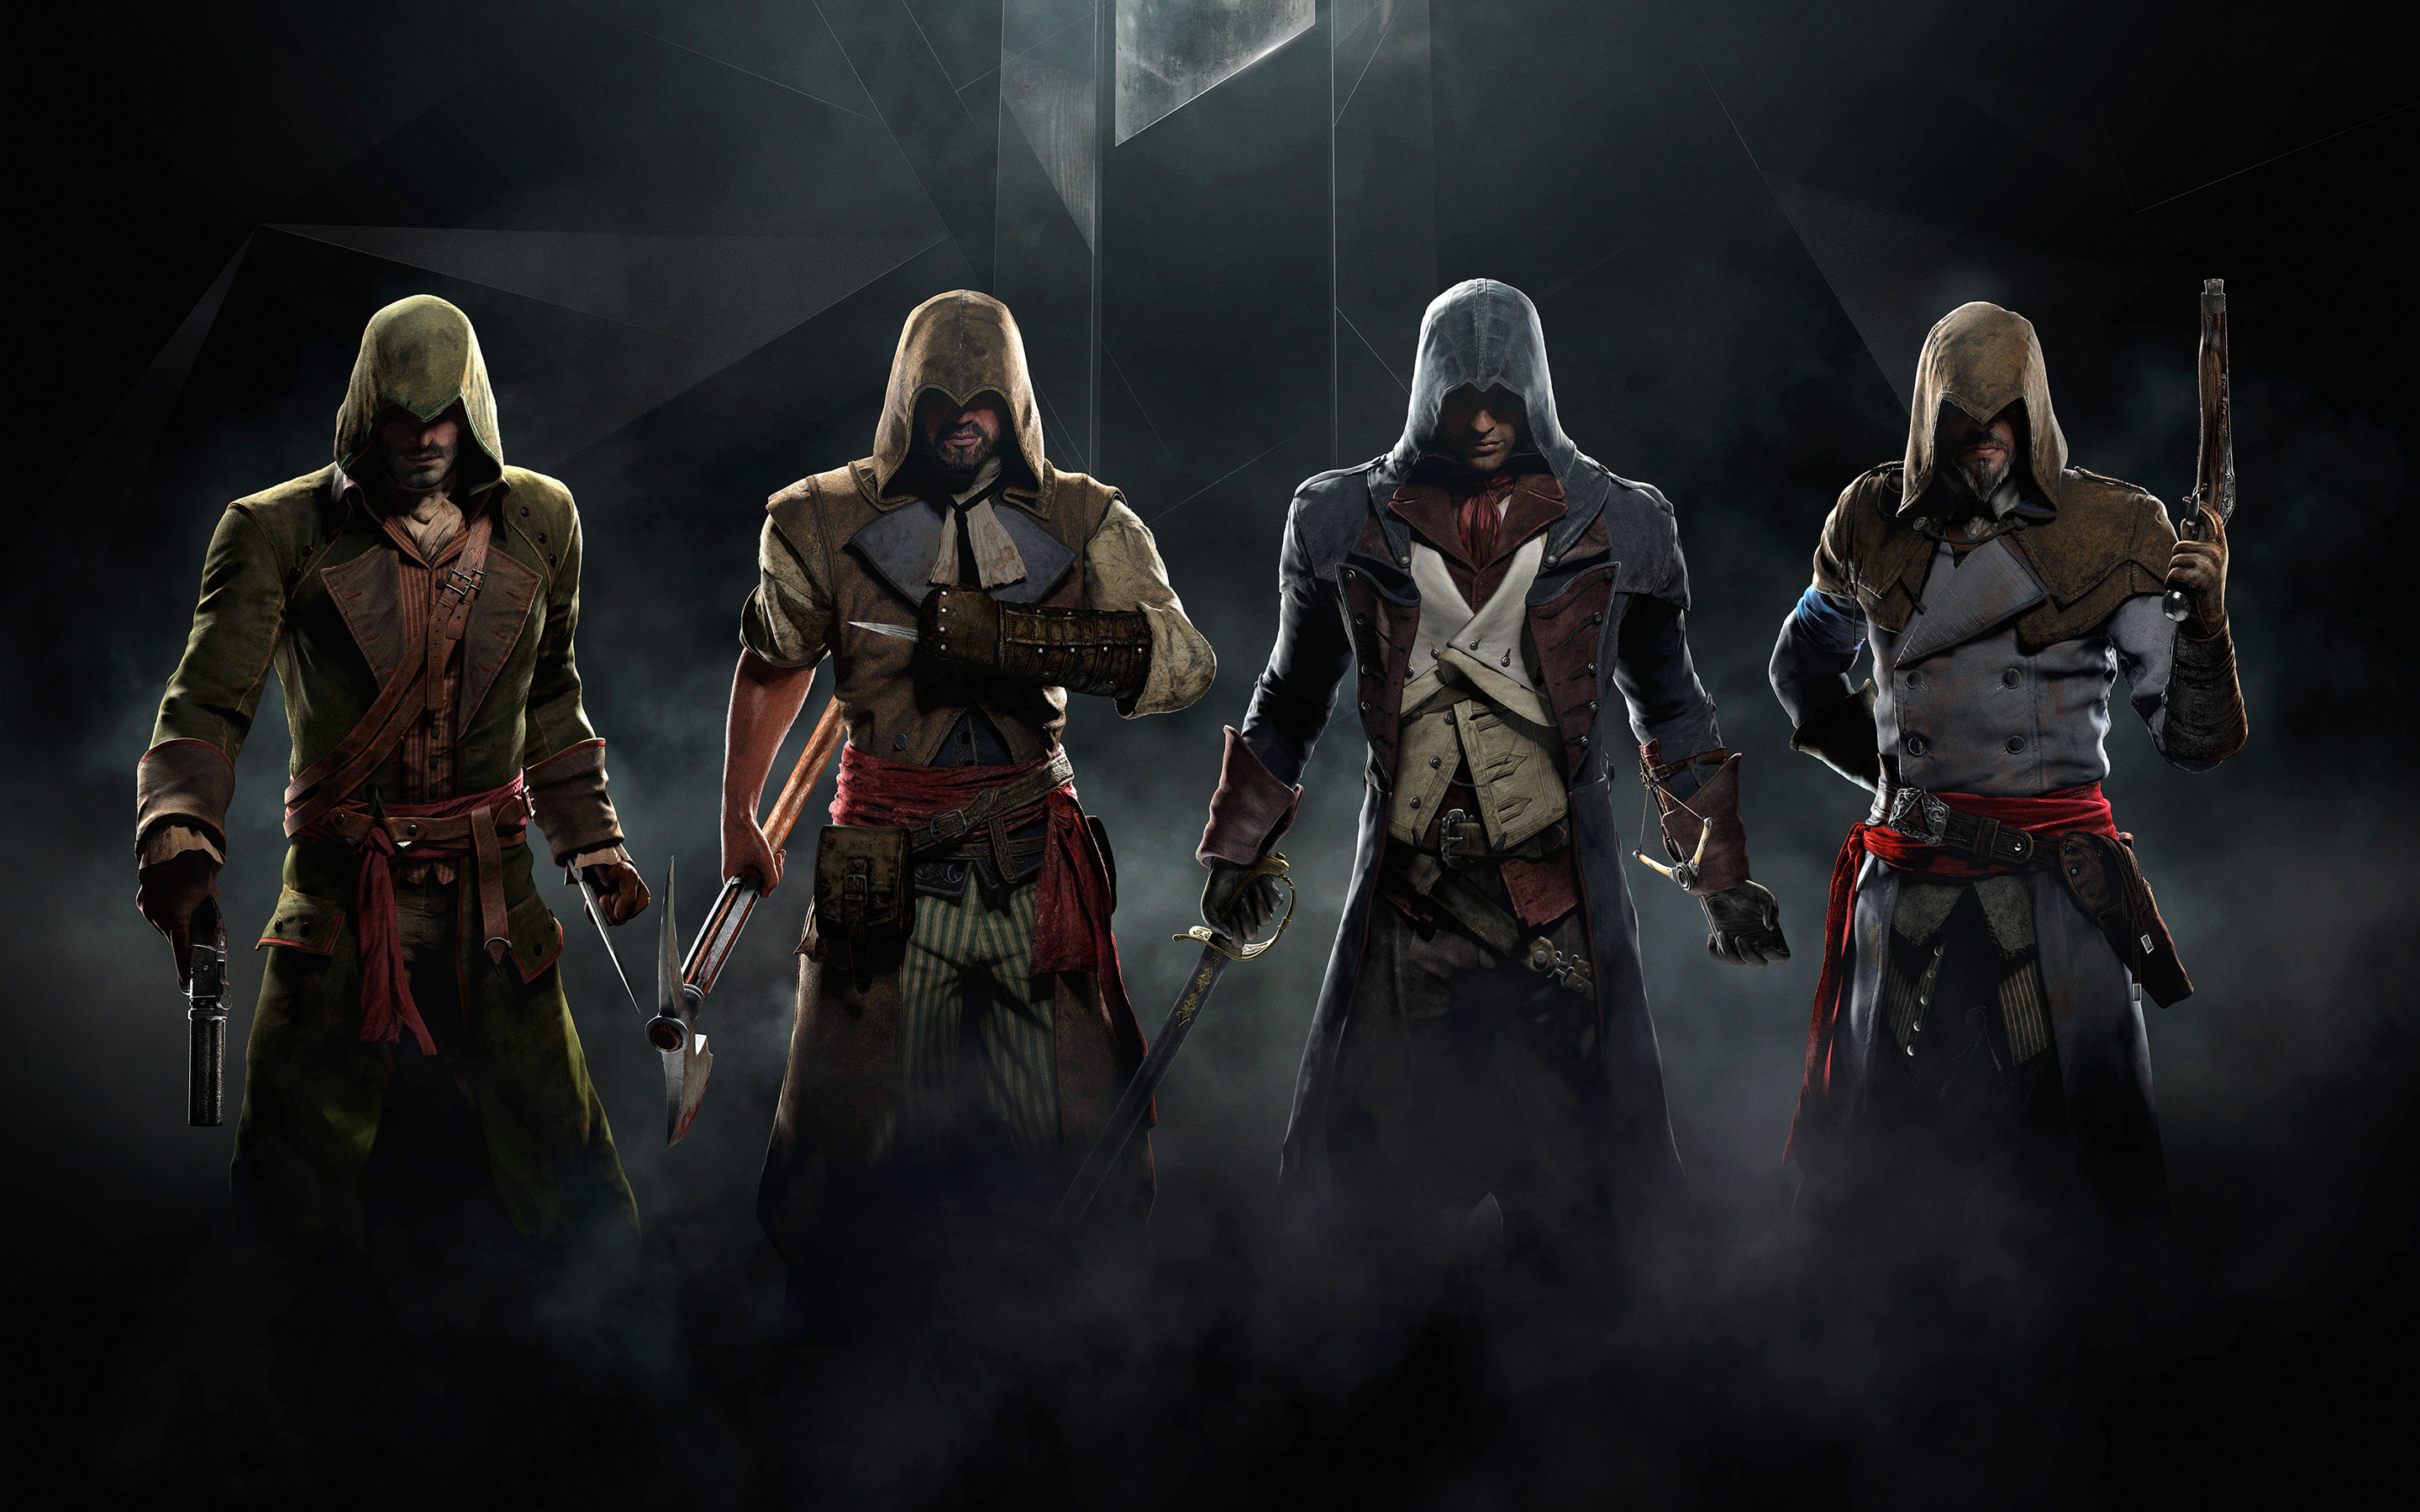 Obviously Ubisoft has modeled the three promotional co op characters 2880x1800